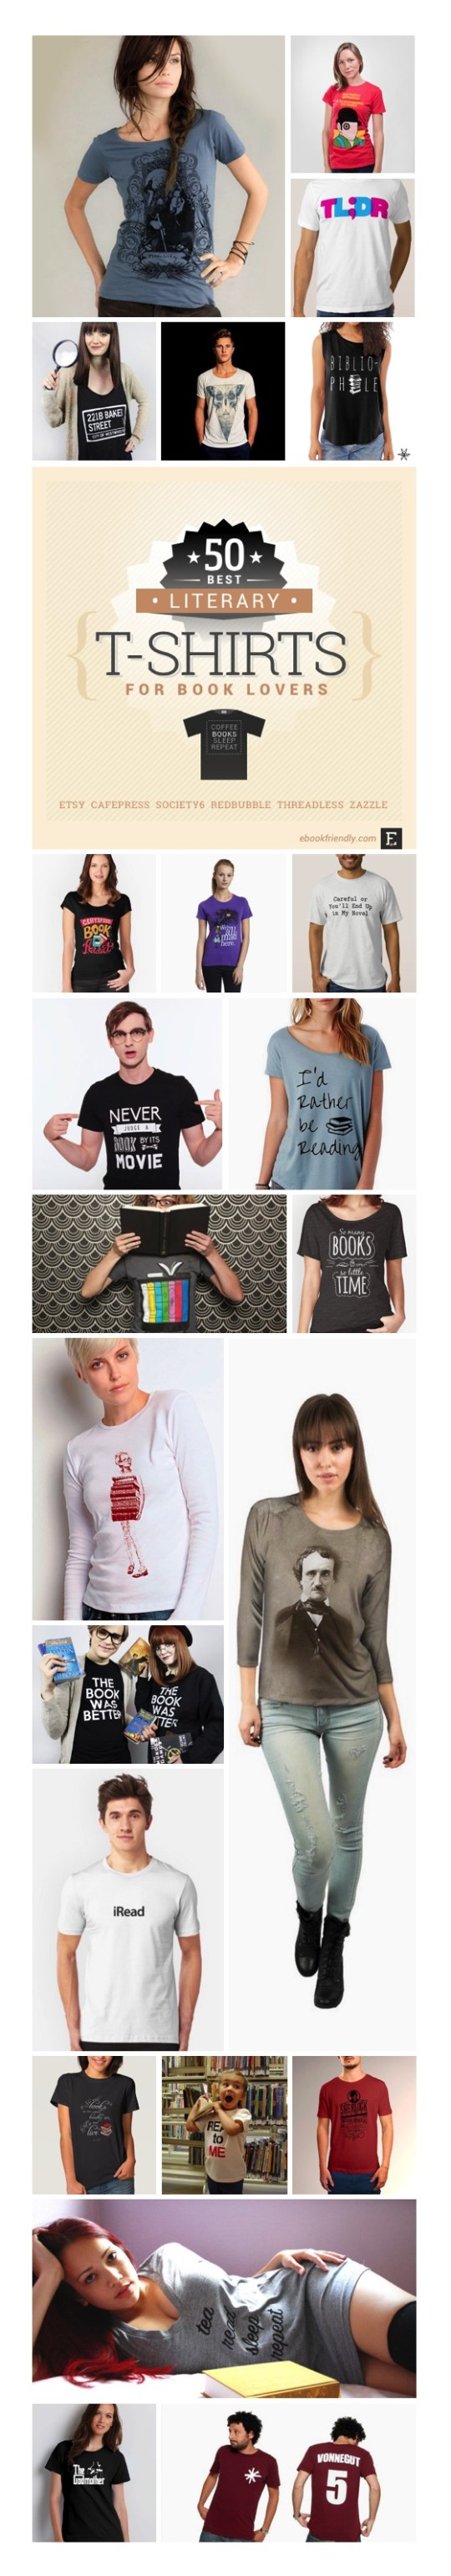 Shirt design zazzle